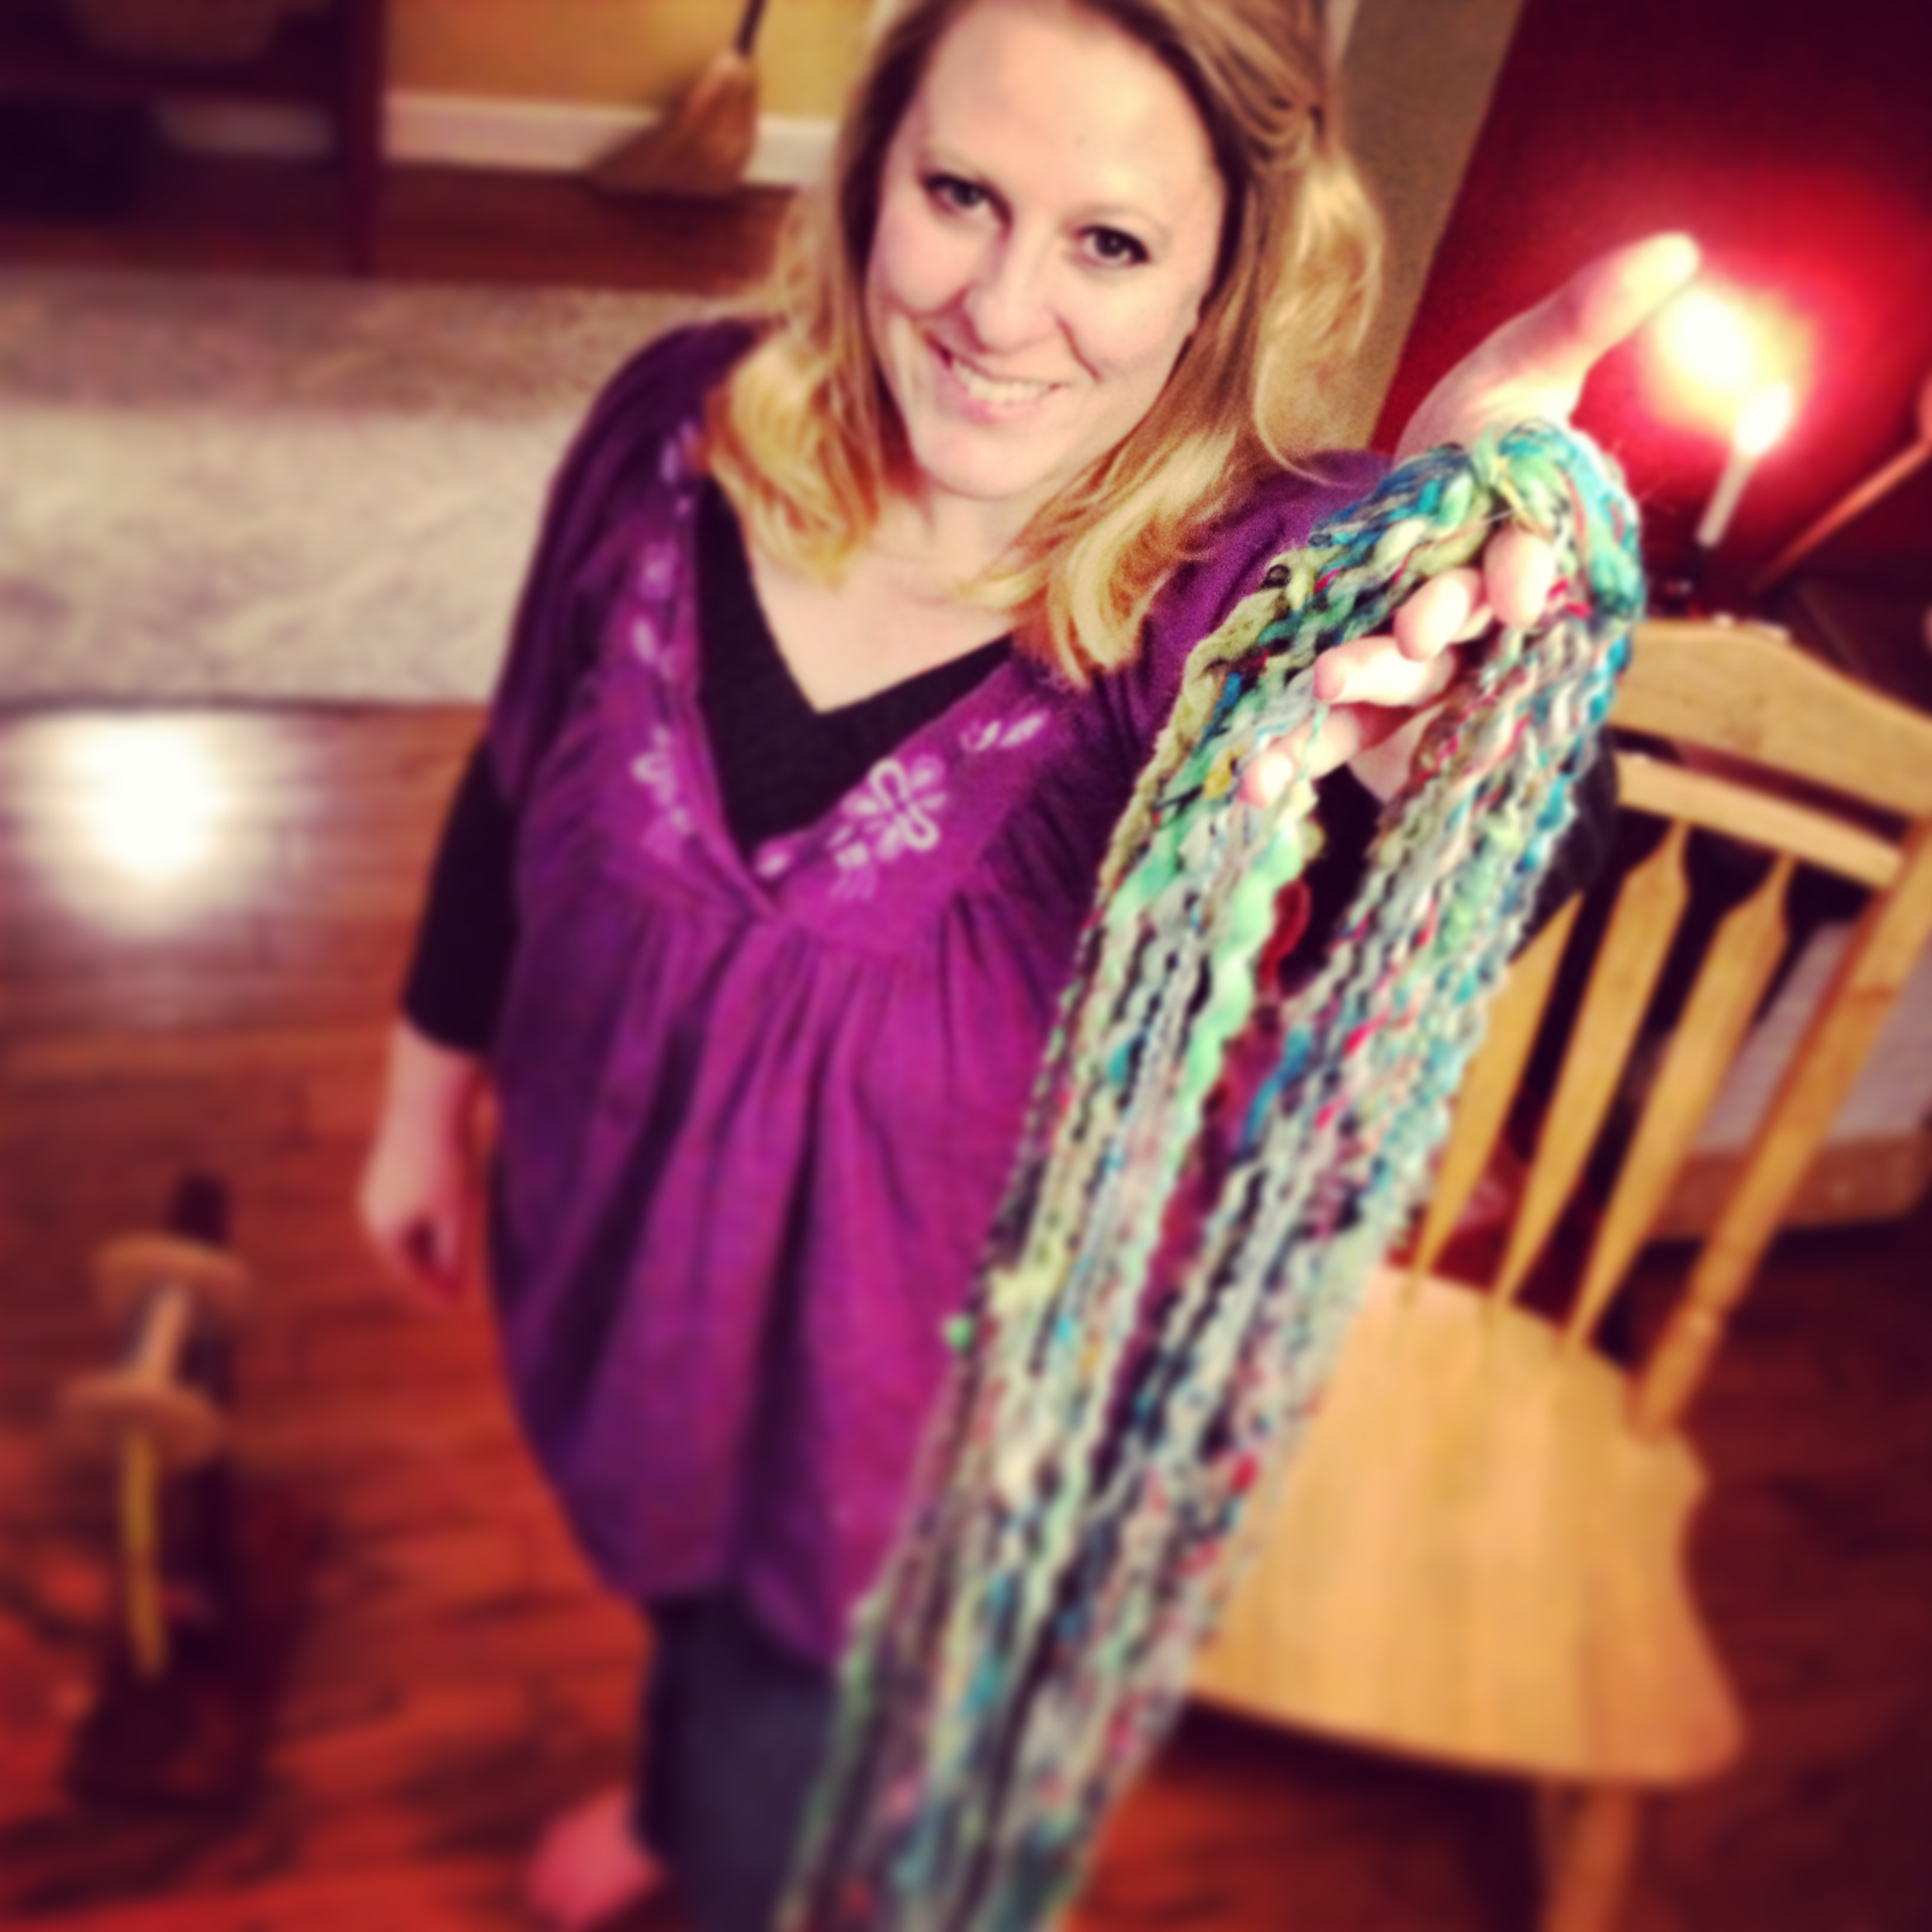 Cyndi with Yarn